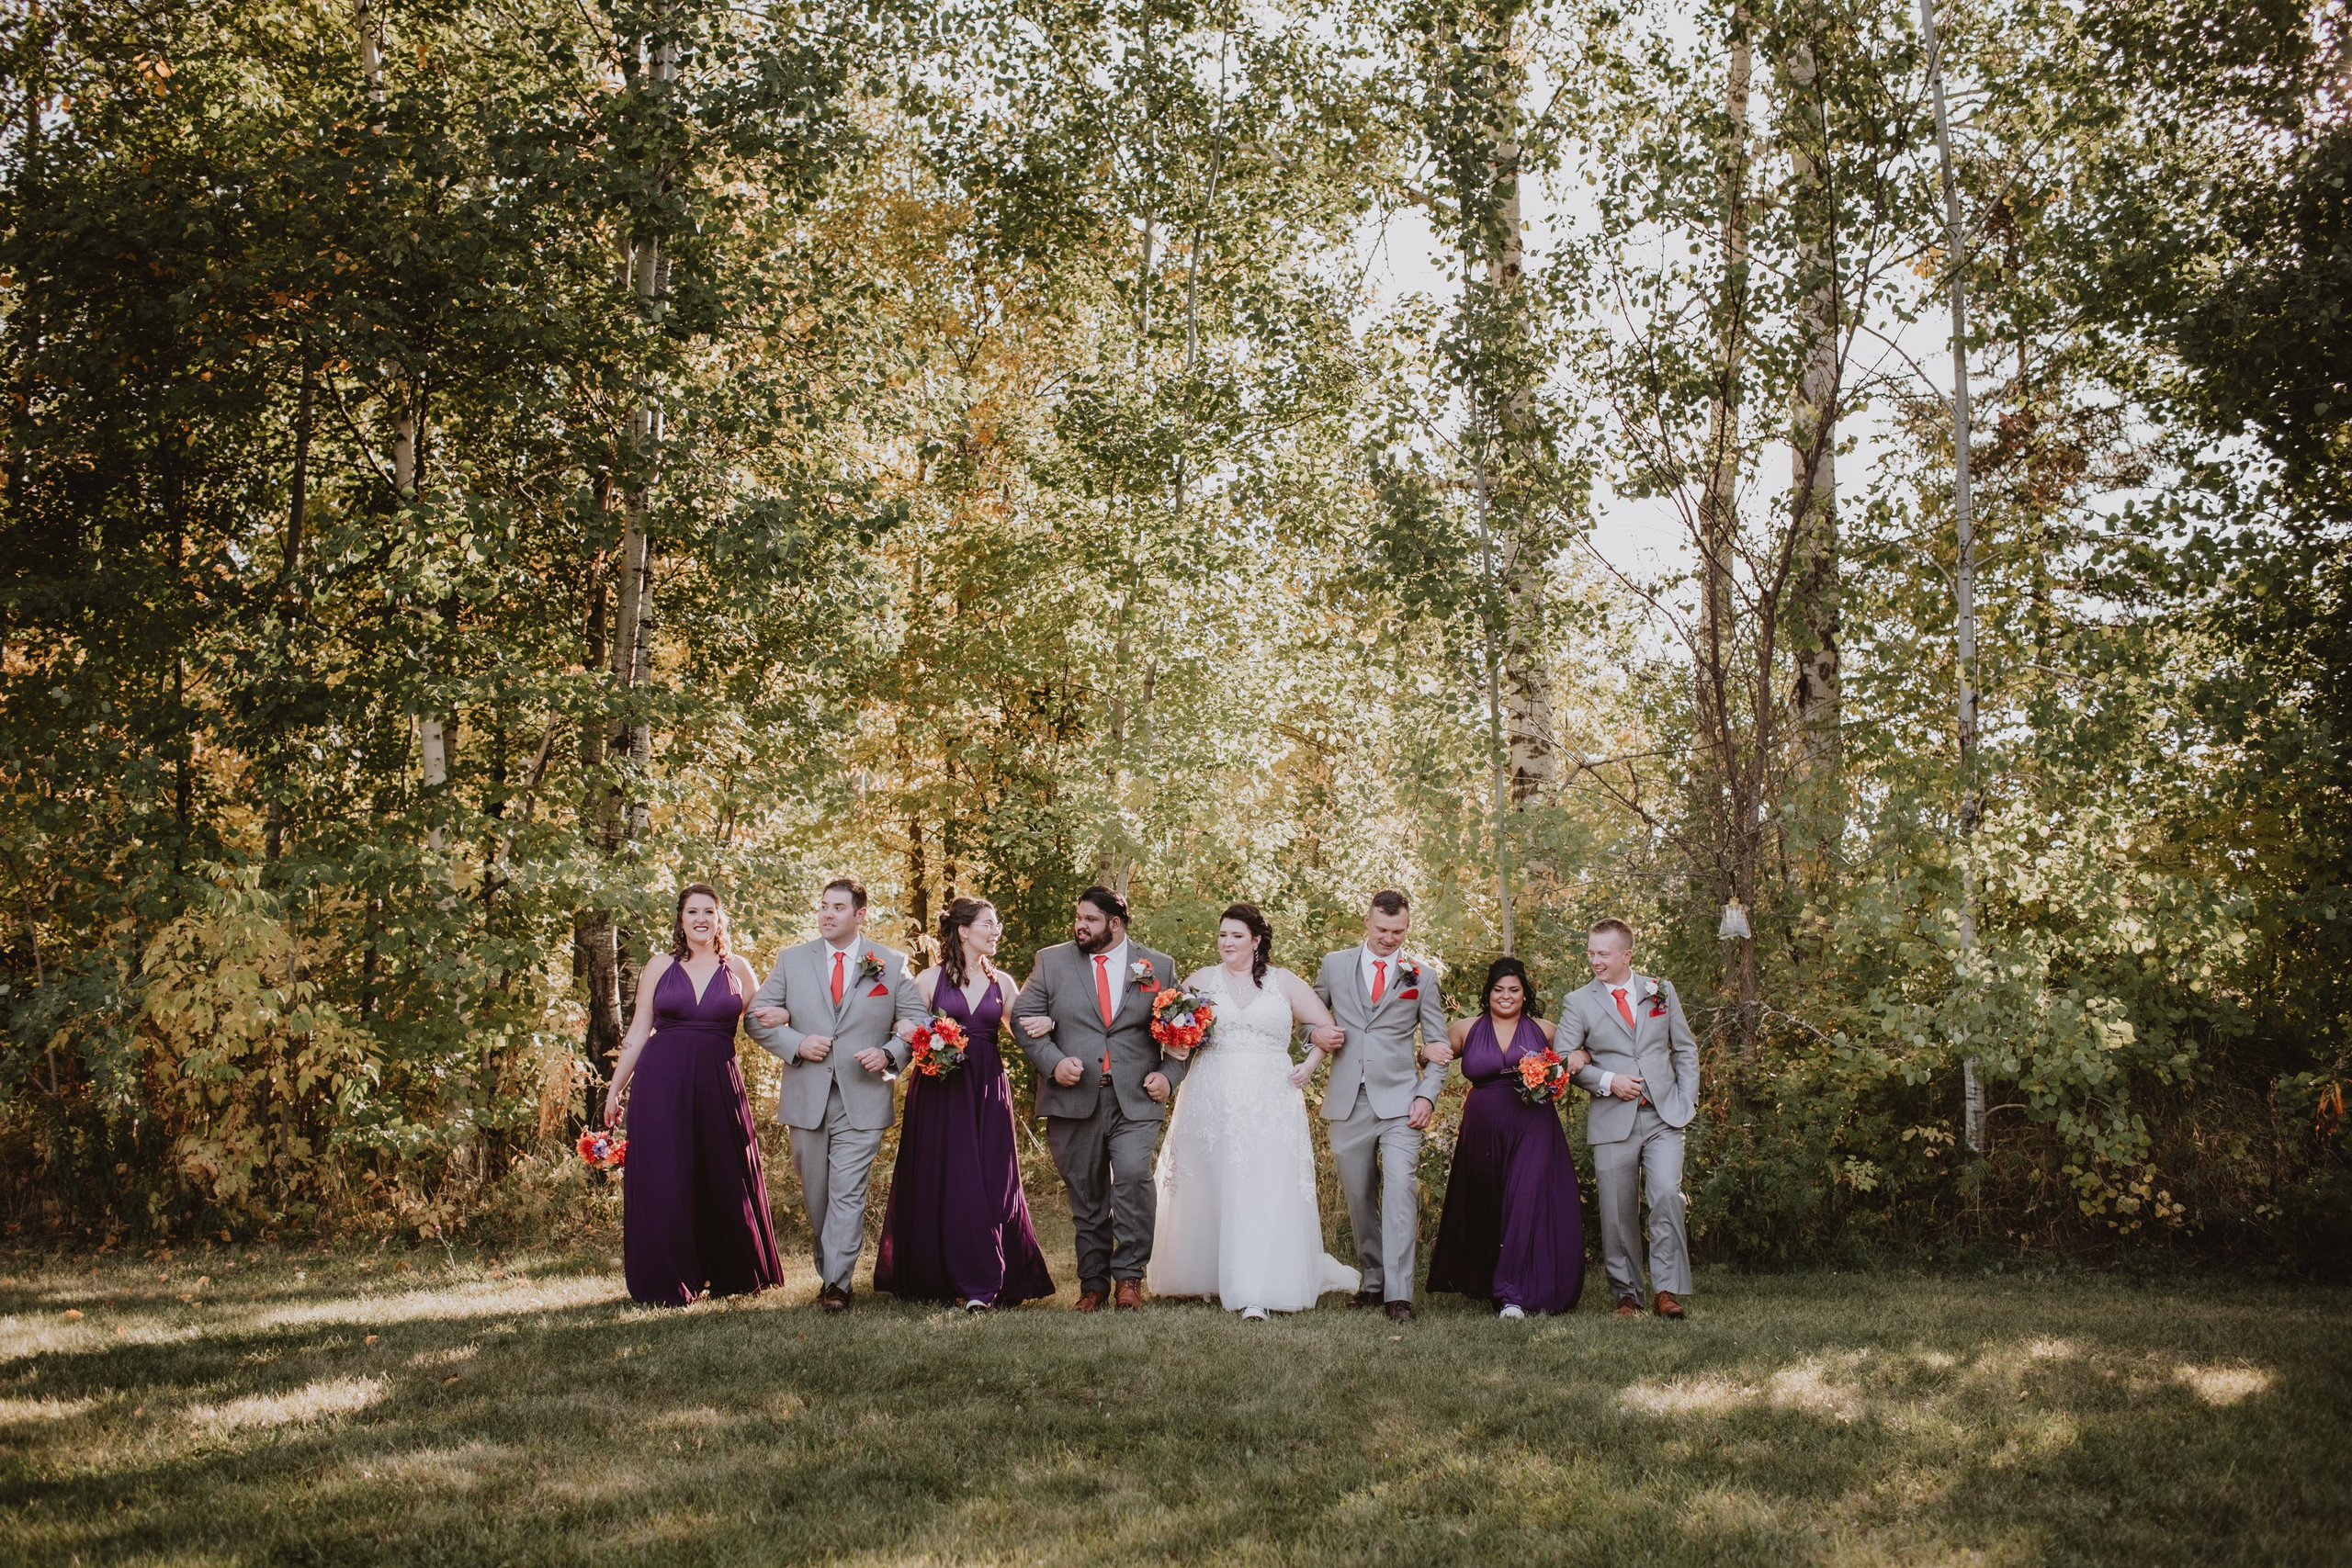 Bridal Party Links Arms and walk during bridal party portraits